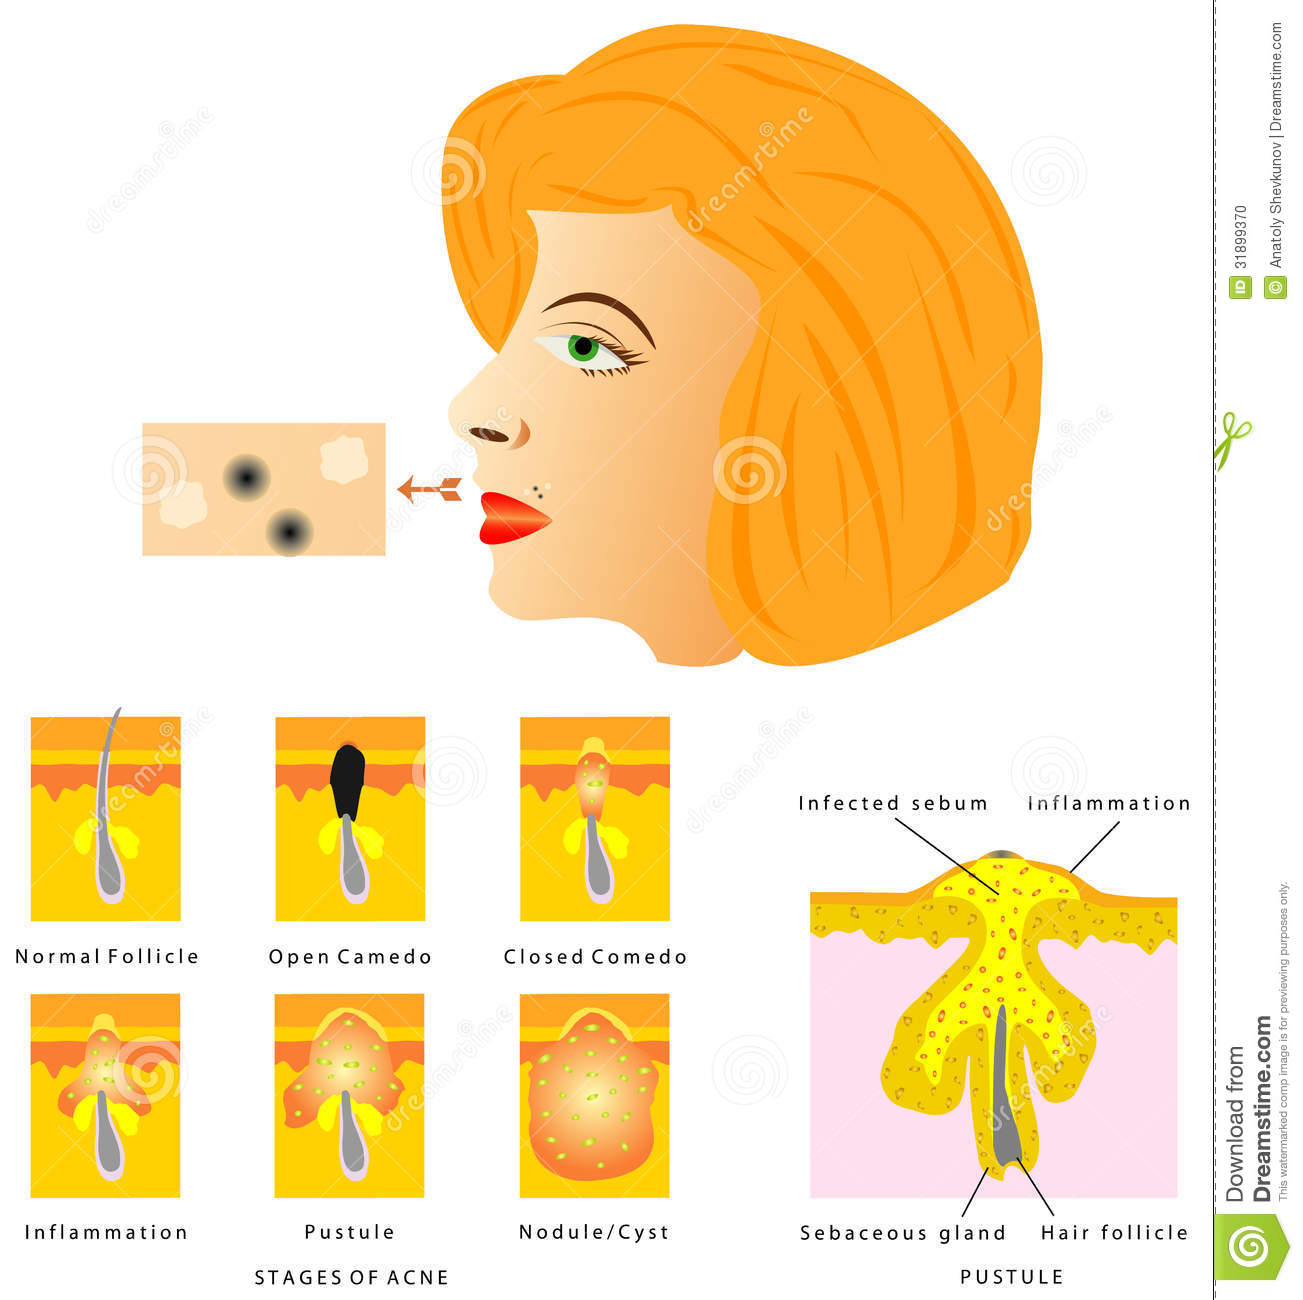 pimple face map with Stock Photo Formation Skin Acne Blackhead Pustule Stages White Background Image31899370 on Stock Image Woman Face Facial Treatment Image15921761 likewise Teen Skin Care Why Your Skin Breaks Out besides Stock Photo Woman Resting Massage Table Spa Side View Beautiful Young Man Background Health Image32429860 likewise Stock Photo Formation Skin Acne Blackhead Pustule Stages White Background Image31899370 together with Viruses.